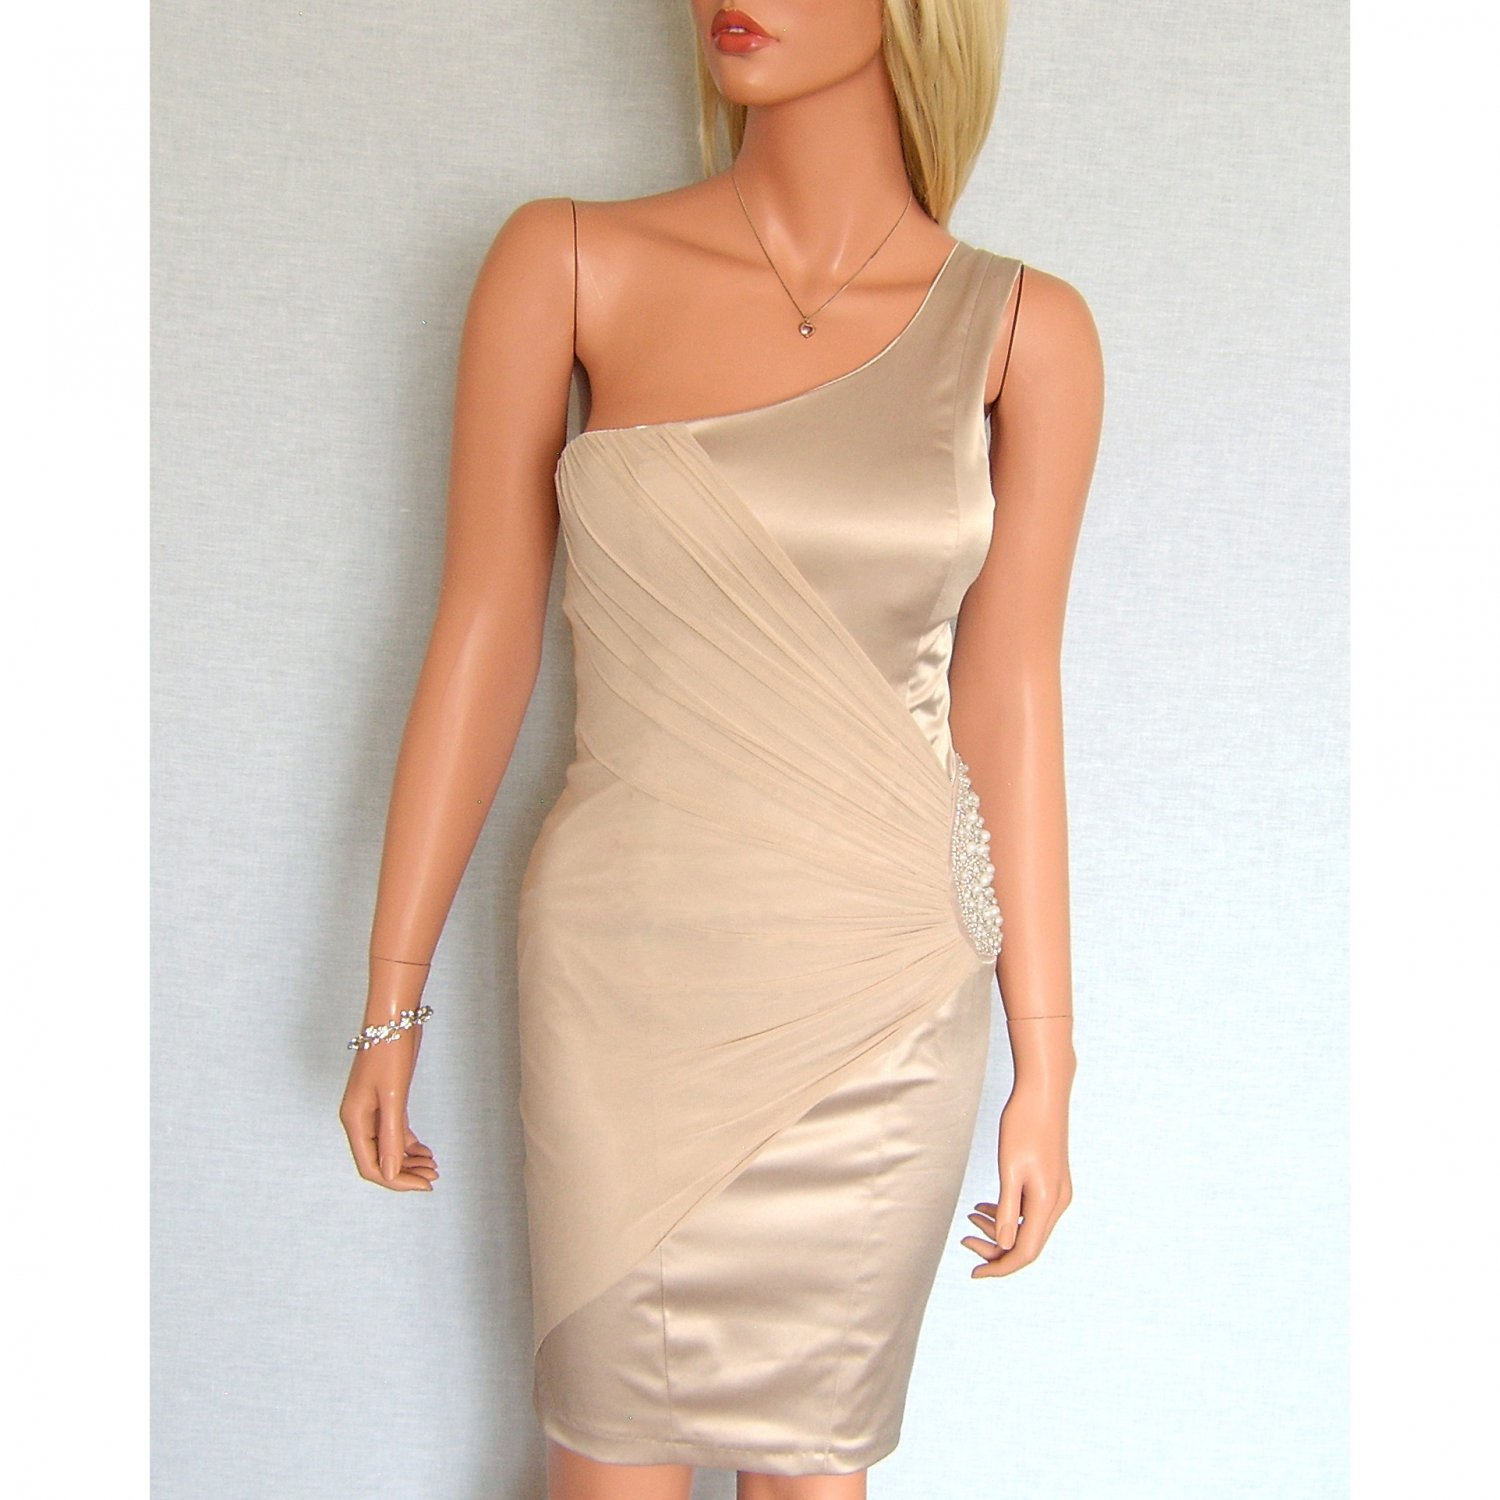 ELISE RYAN TOPSHOP NUDE PEARL BEADED EVENING BODYCON MINI COCKTAIL CLUB PARTY PROM DRESS UK 8, US 4